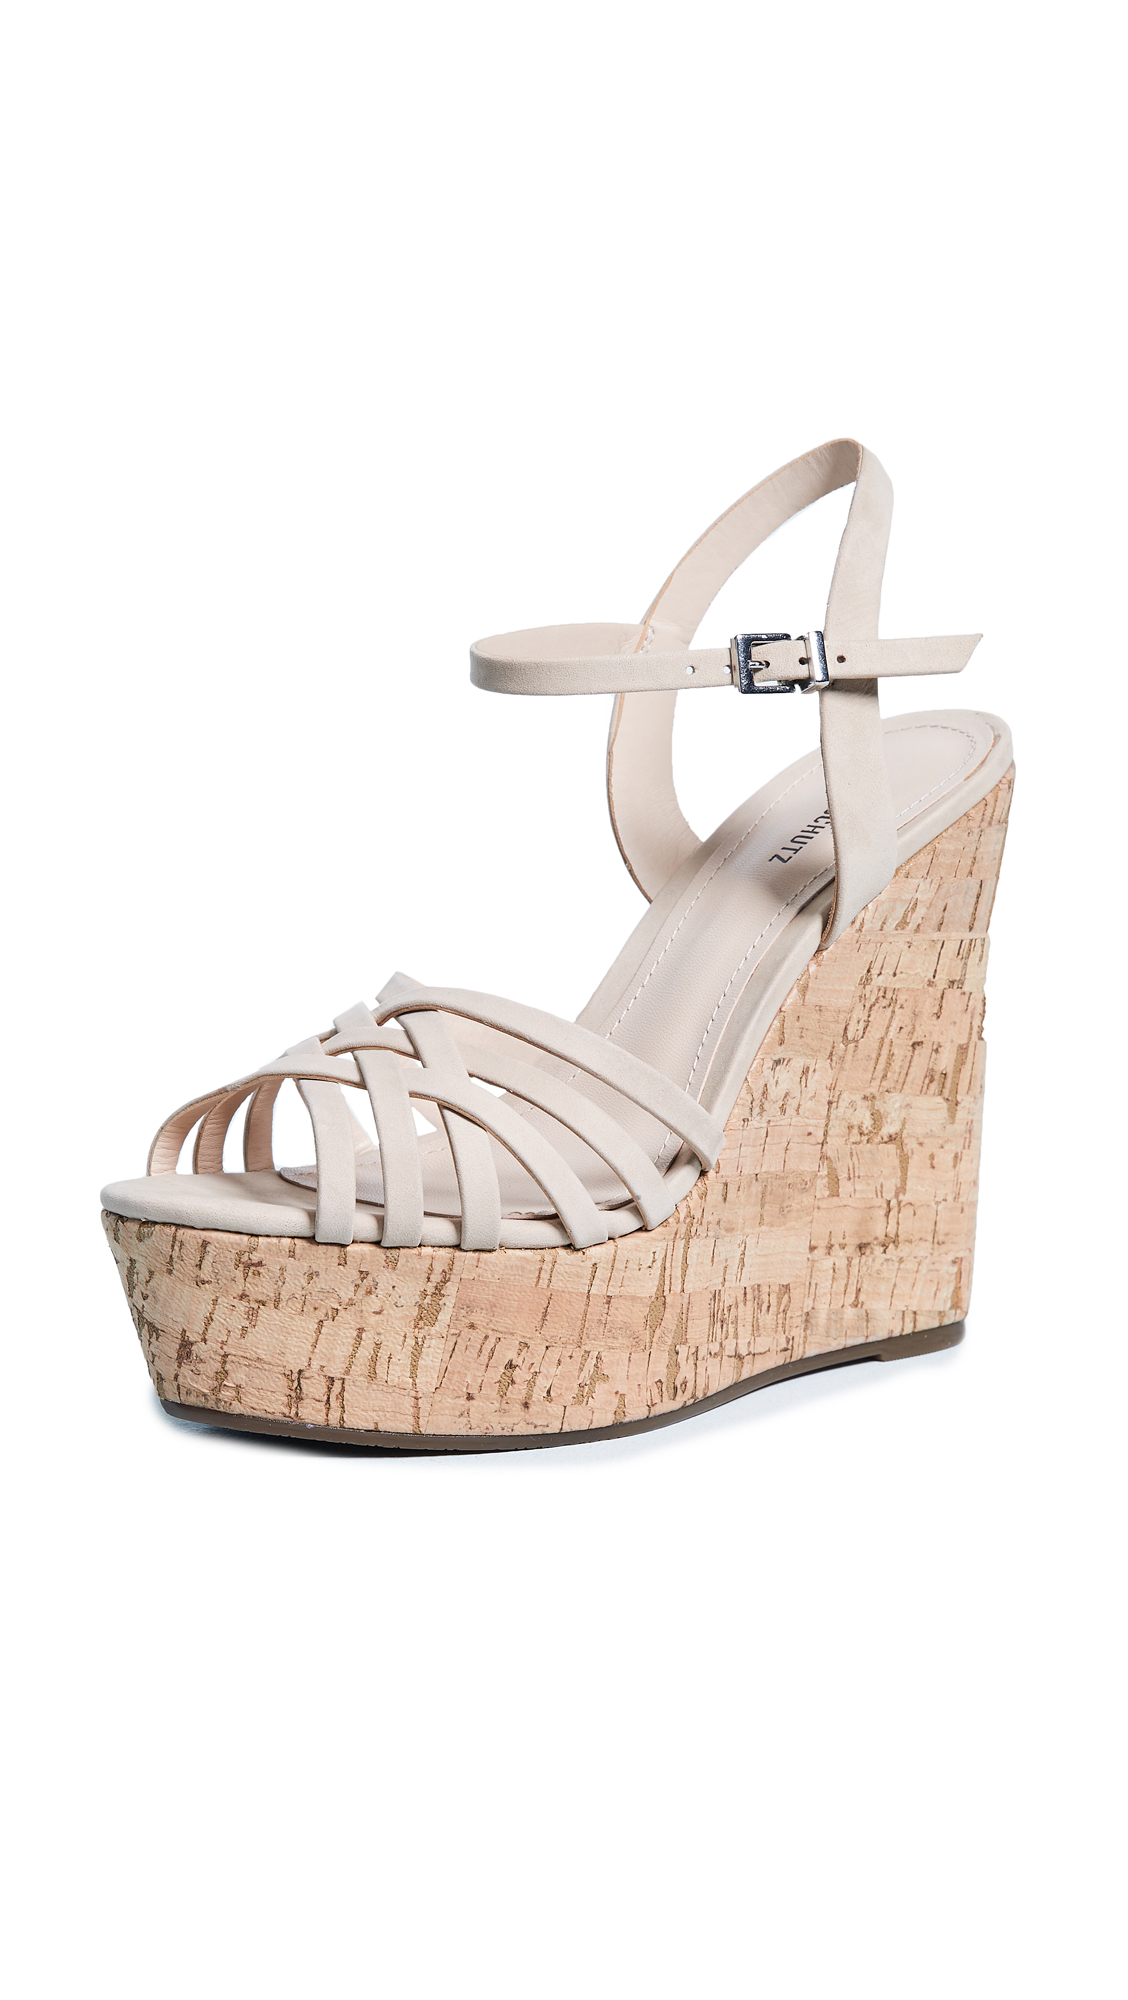 Schutz Louna Strappy Wedge Sandals - Oyster